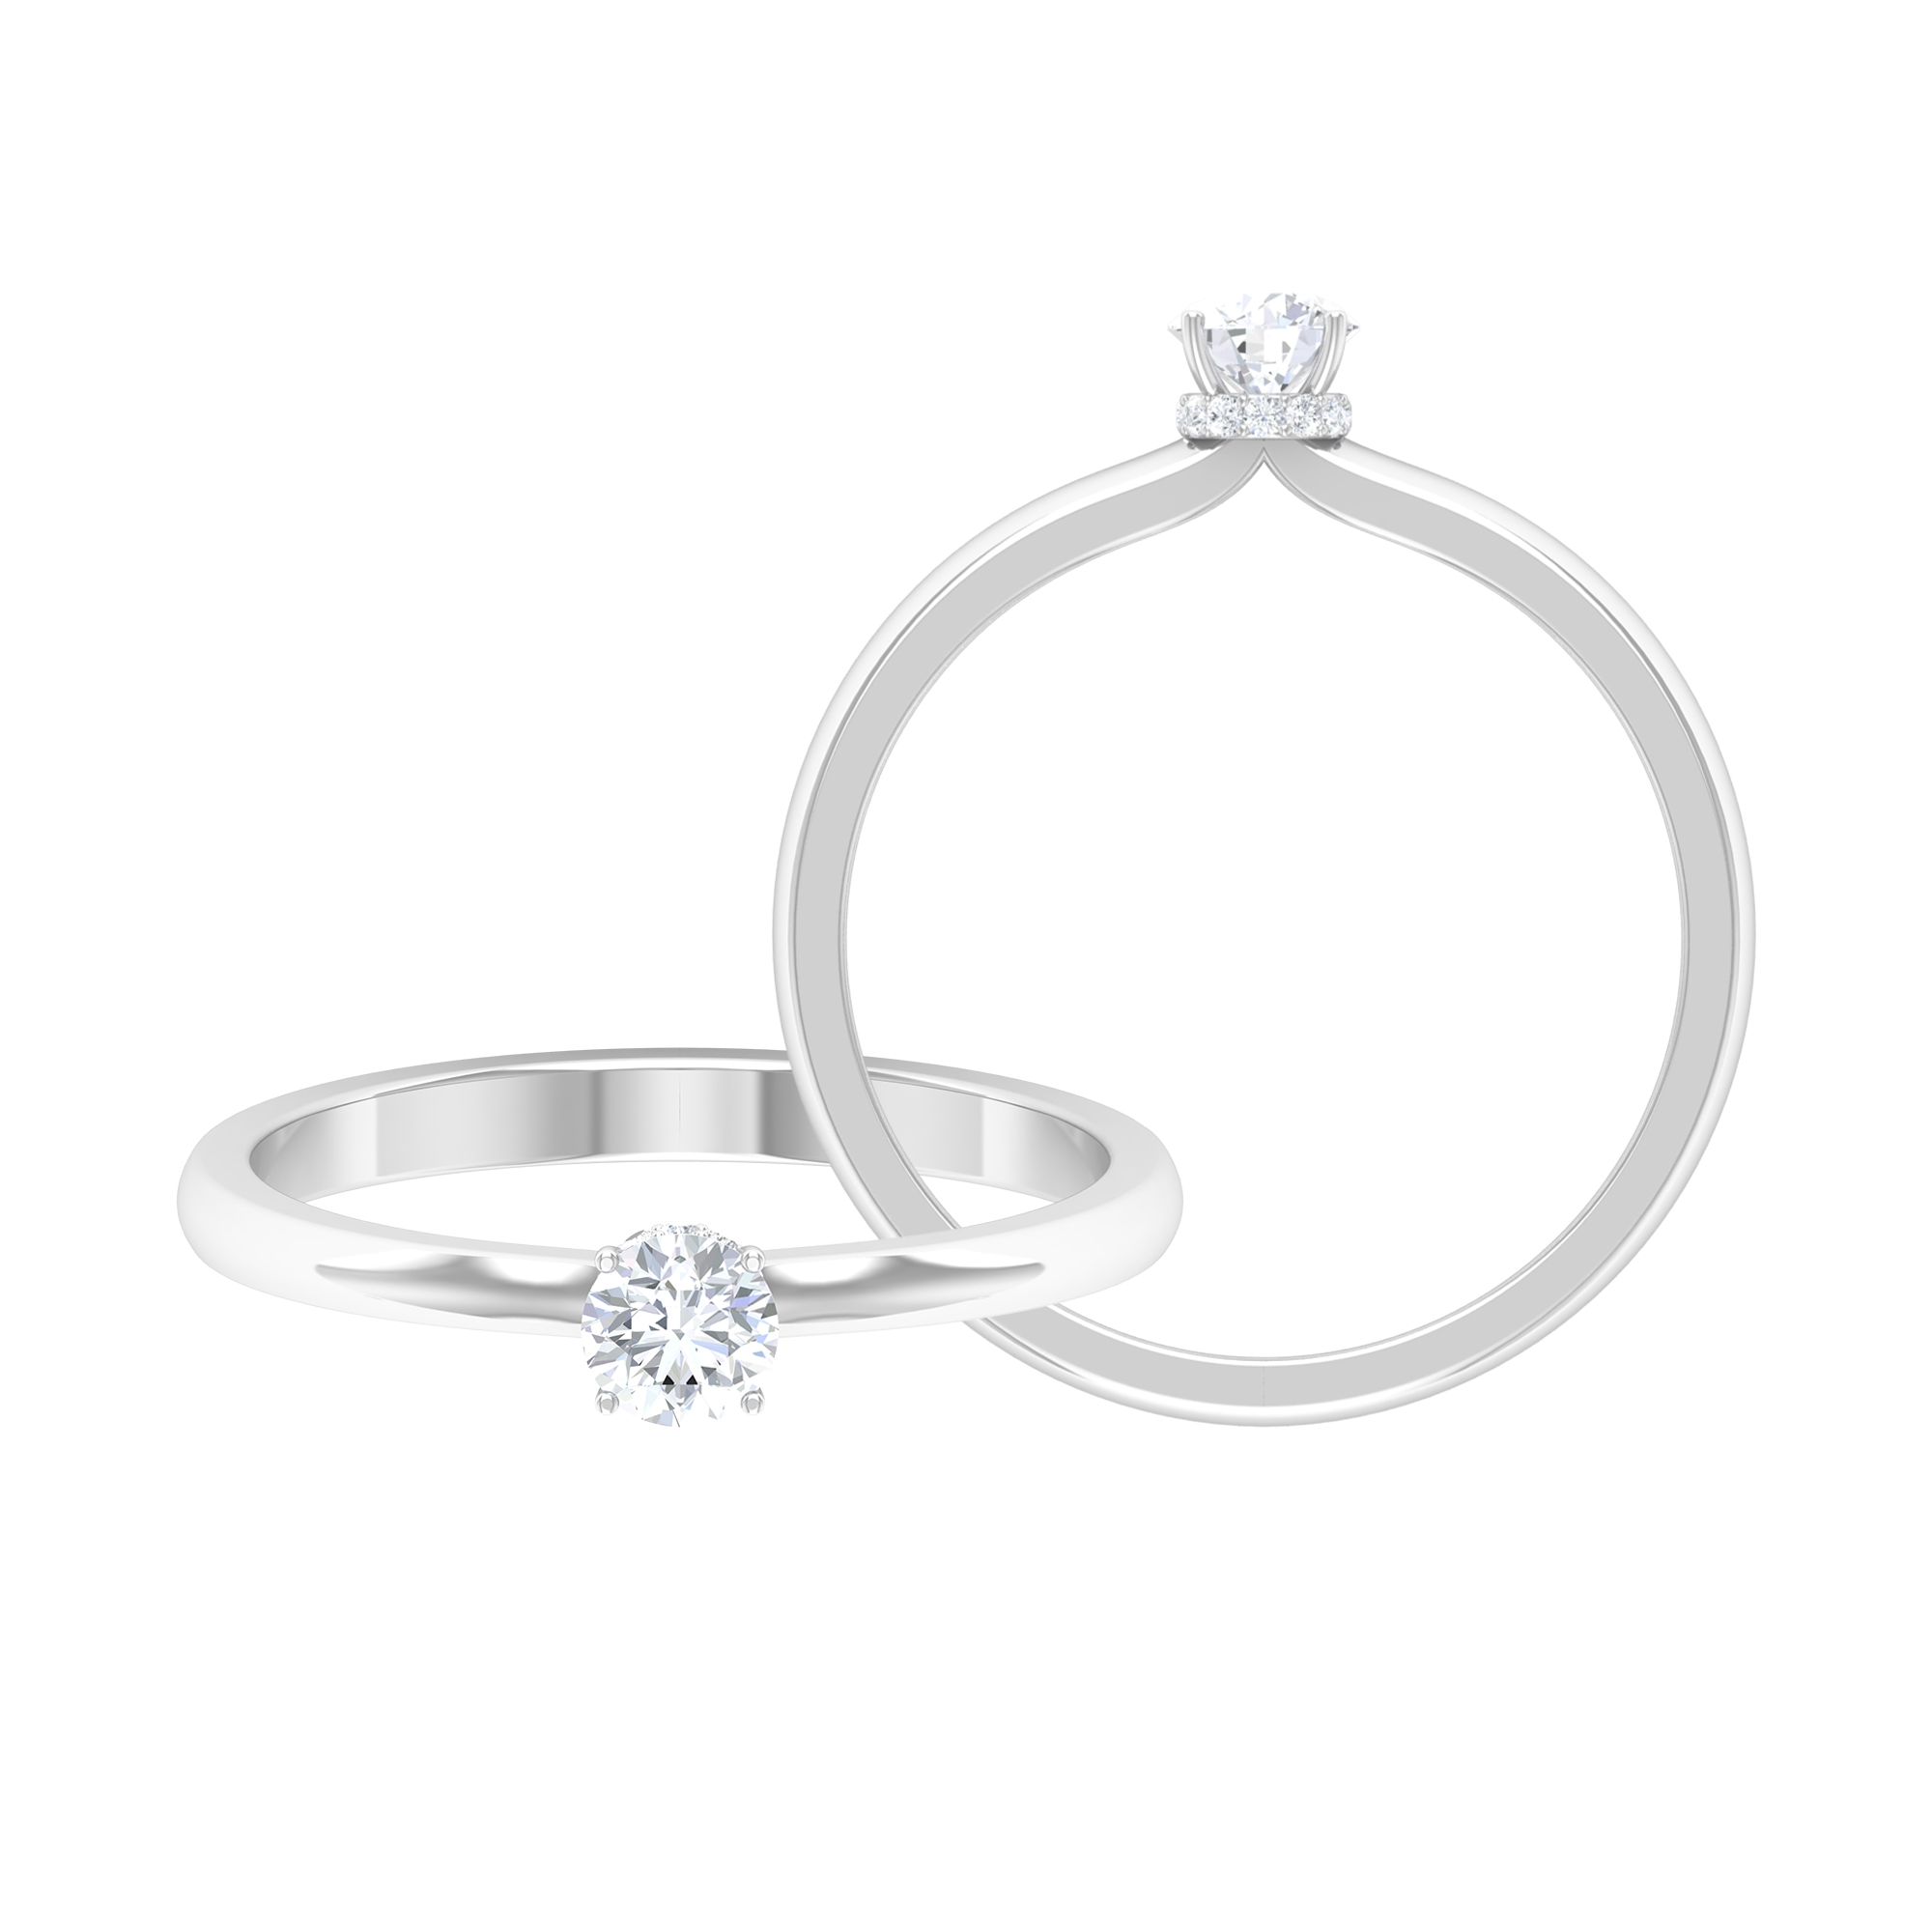 1/4 CT Round Cut Diamond Solitaire Ring in 4 Prong Setting with Hidden Halo